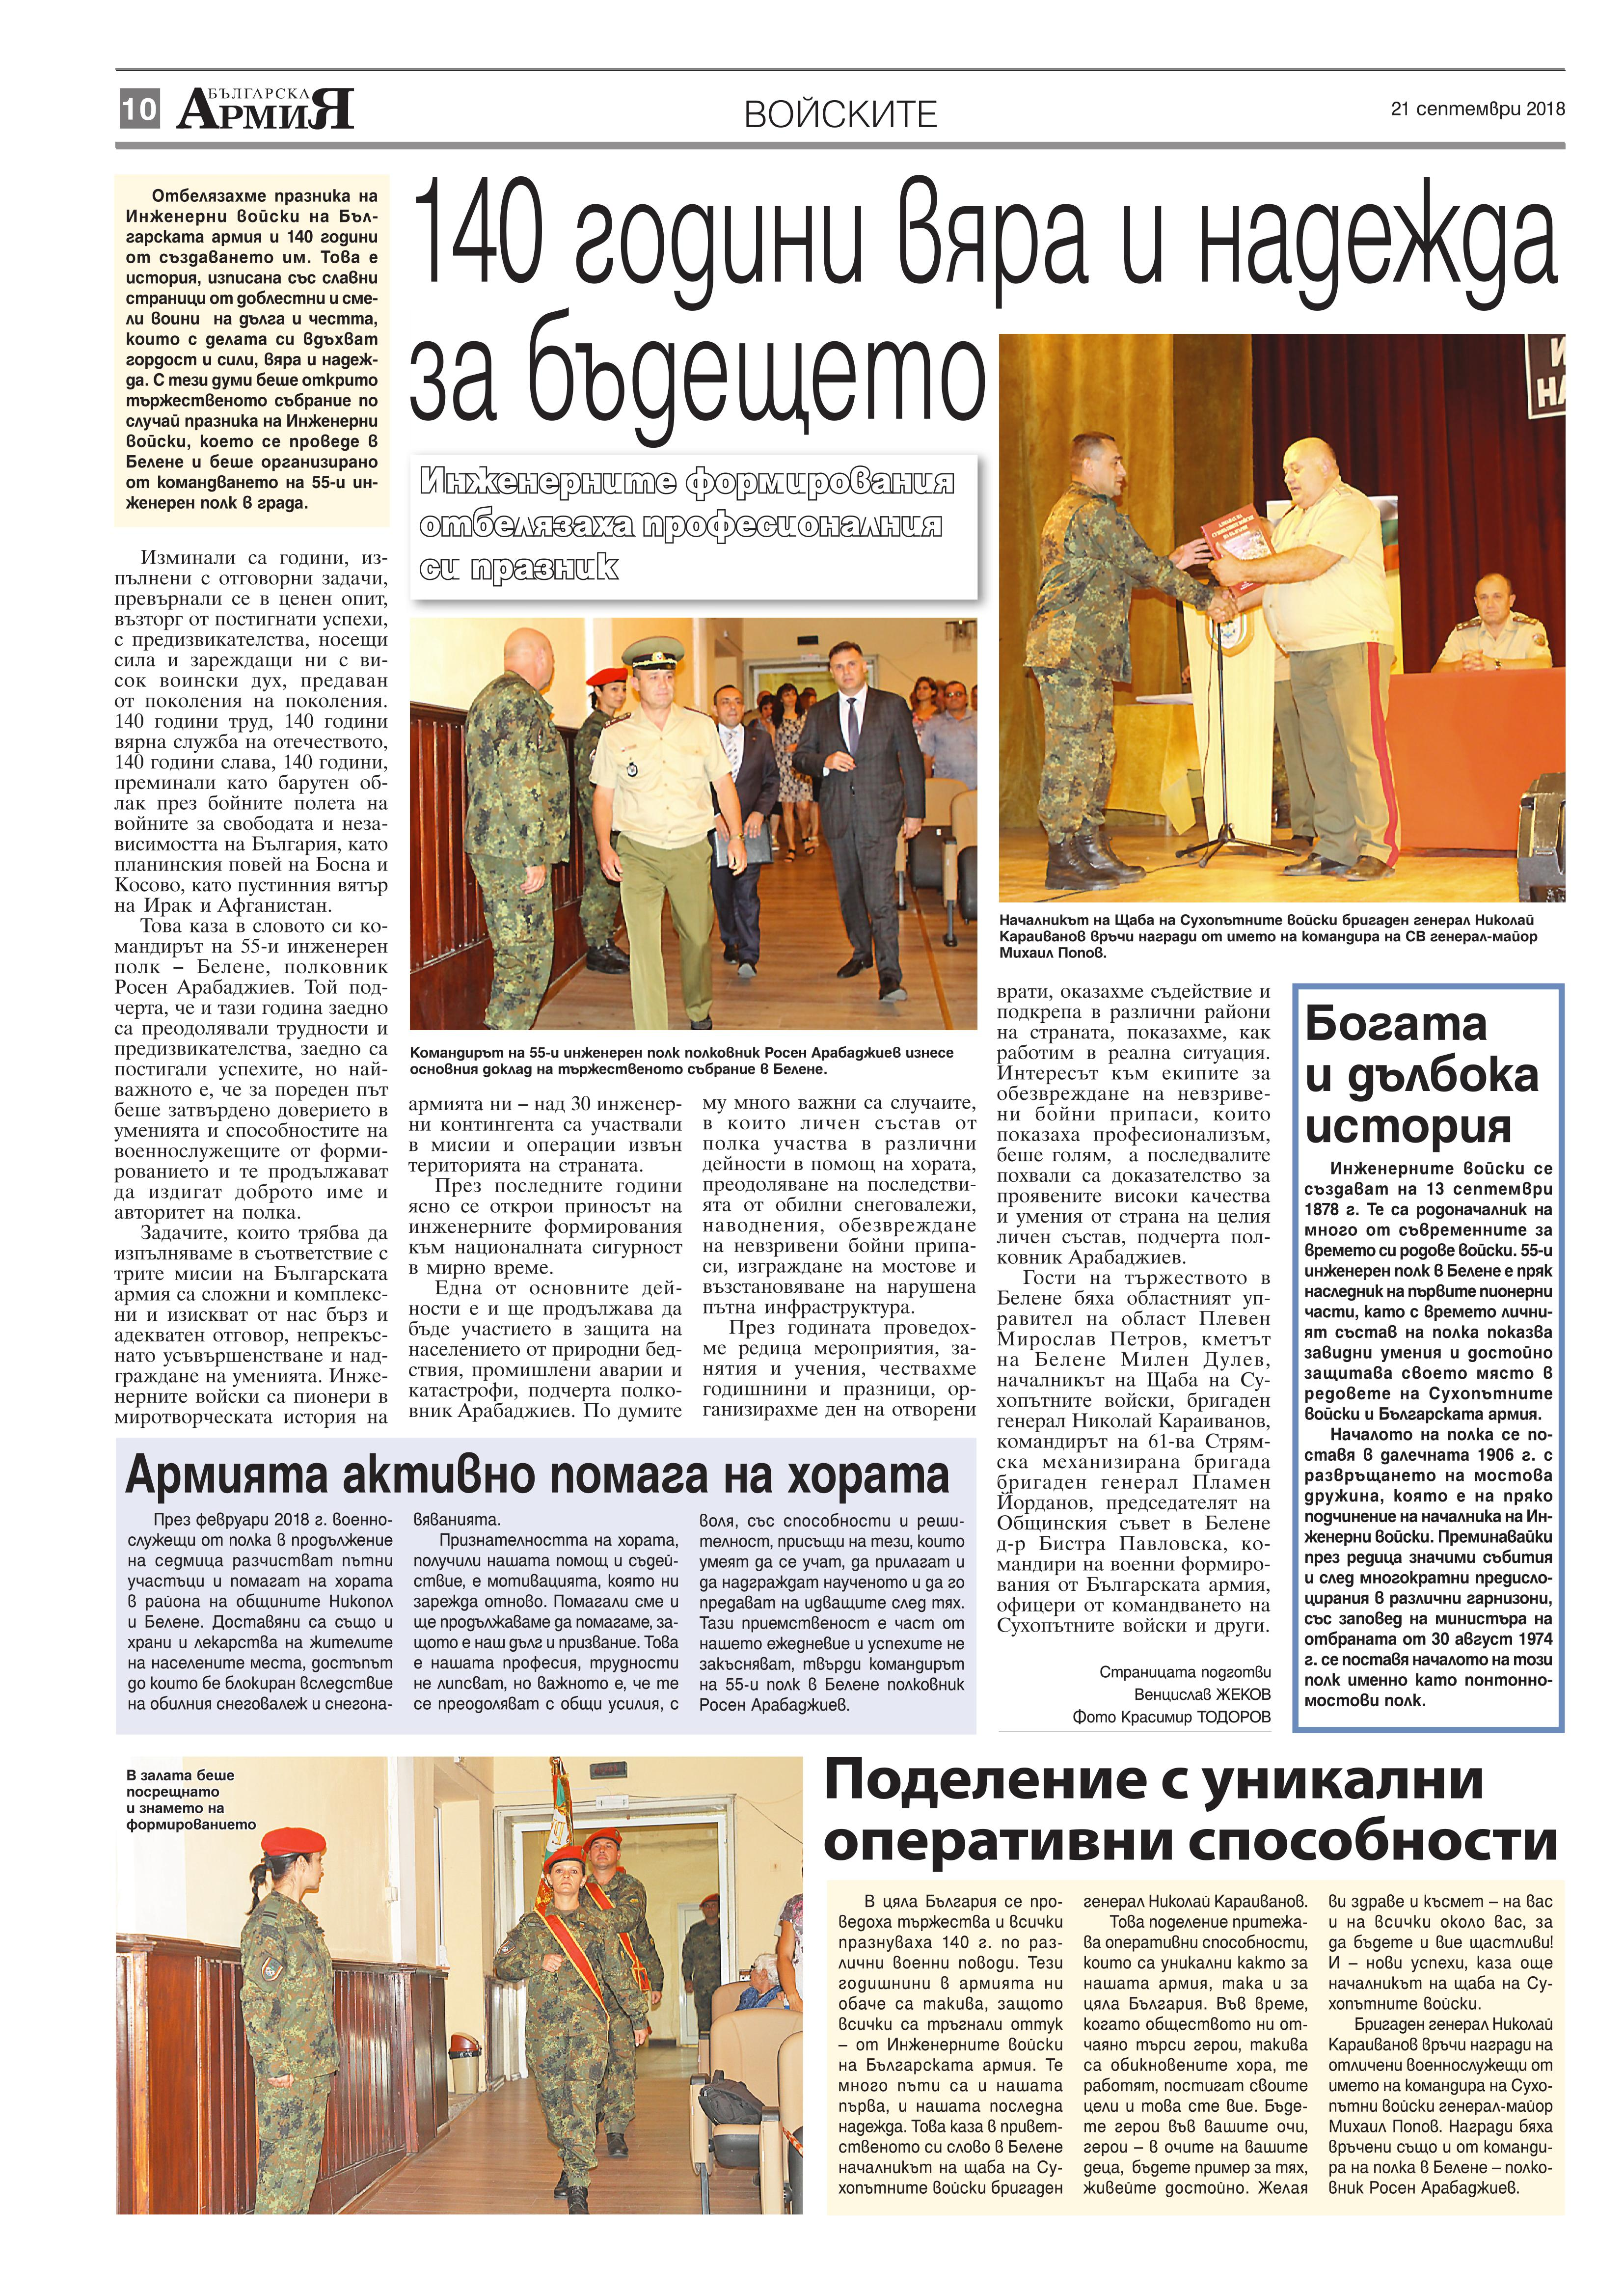 https://armymedia.bg/wp-content/uploads/2015/06/10.page1_-66.jpg